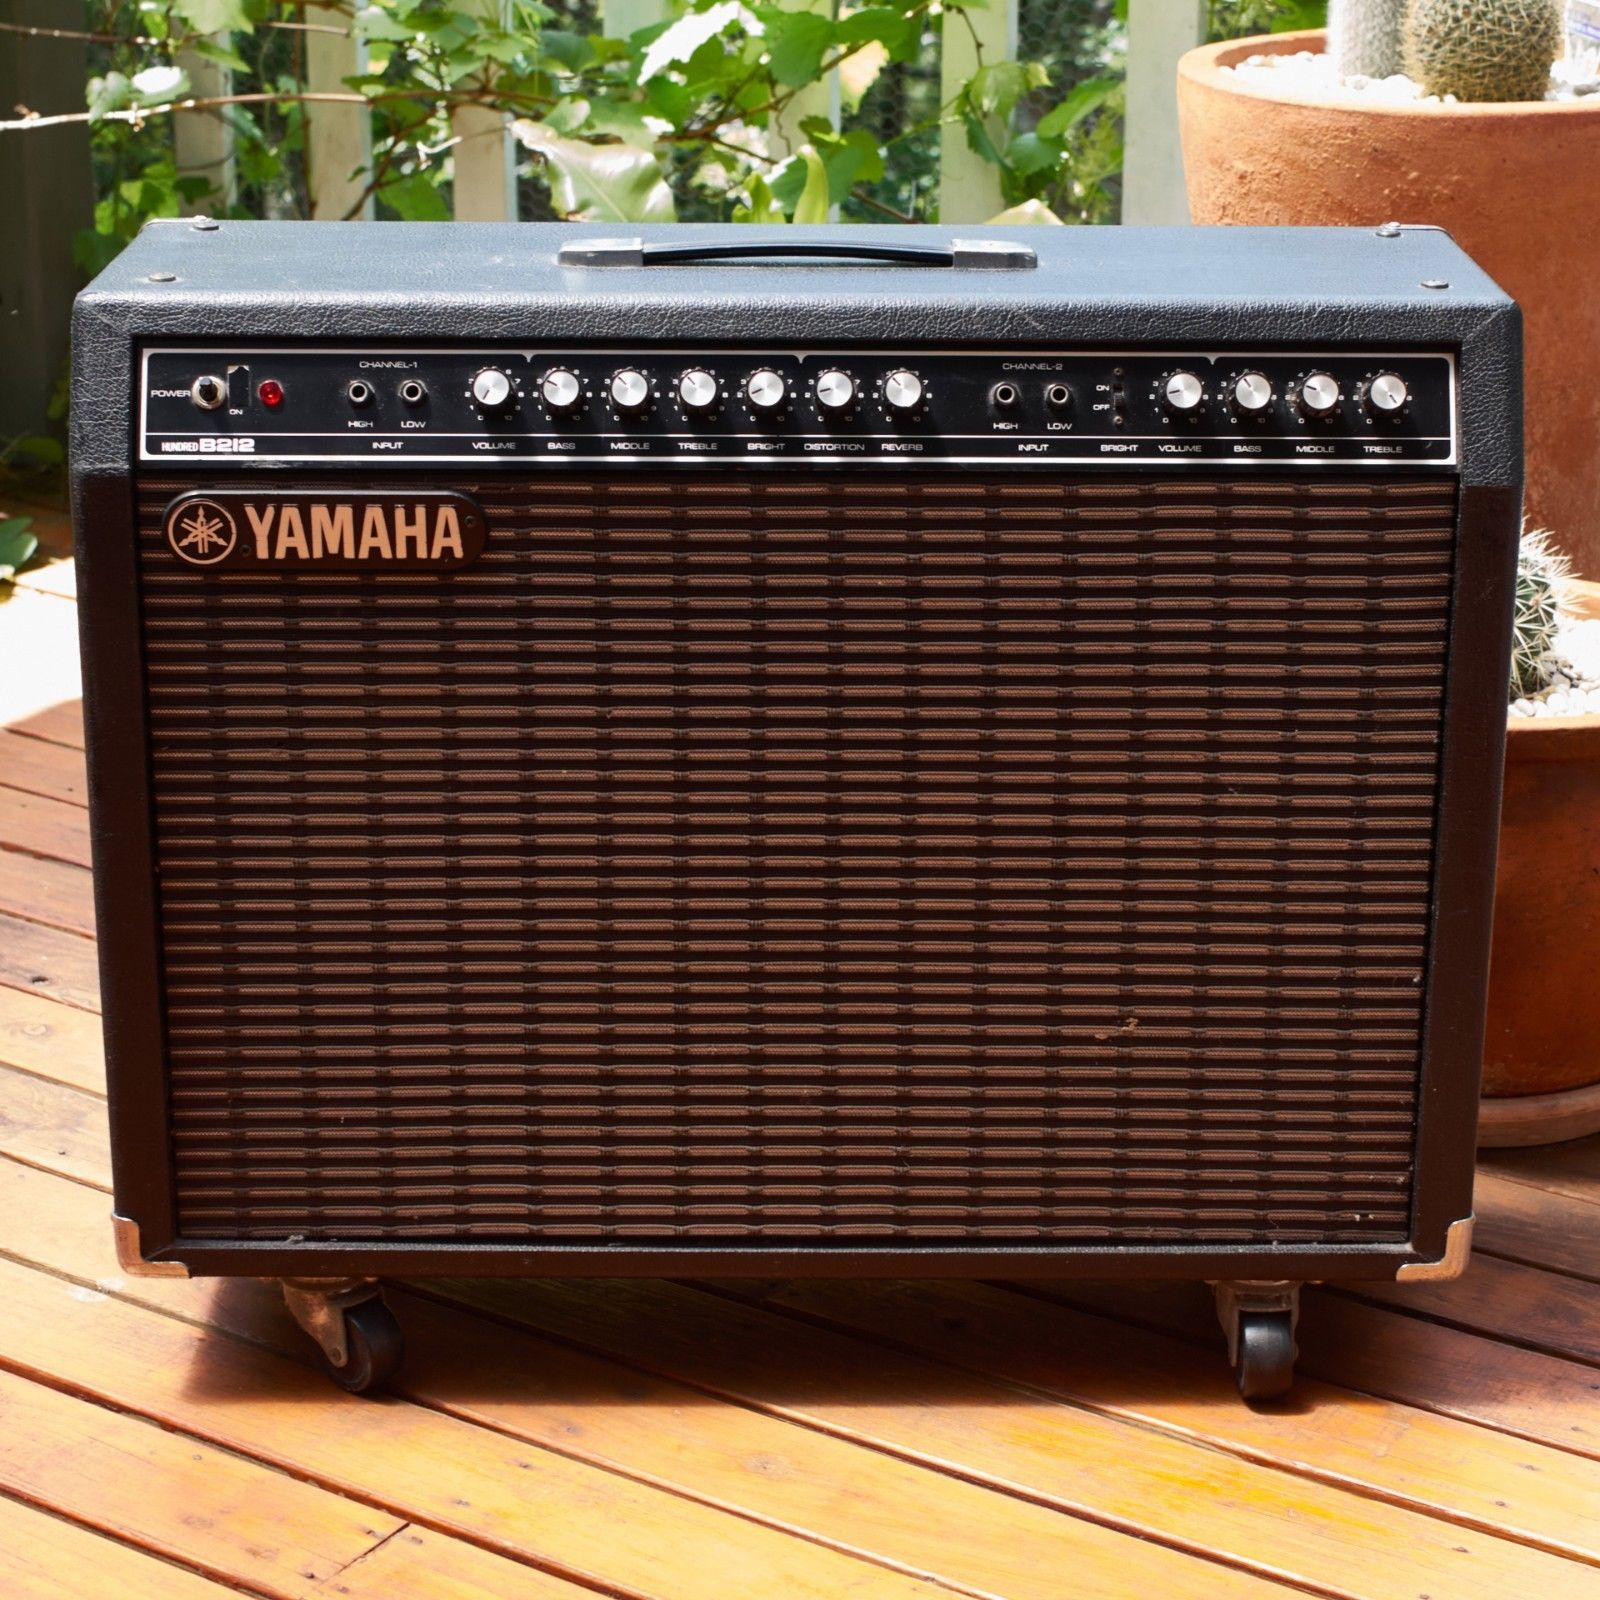 How Many Guitar Amps Do You Own?-yamaha-g100-jpg